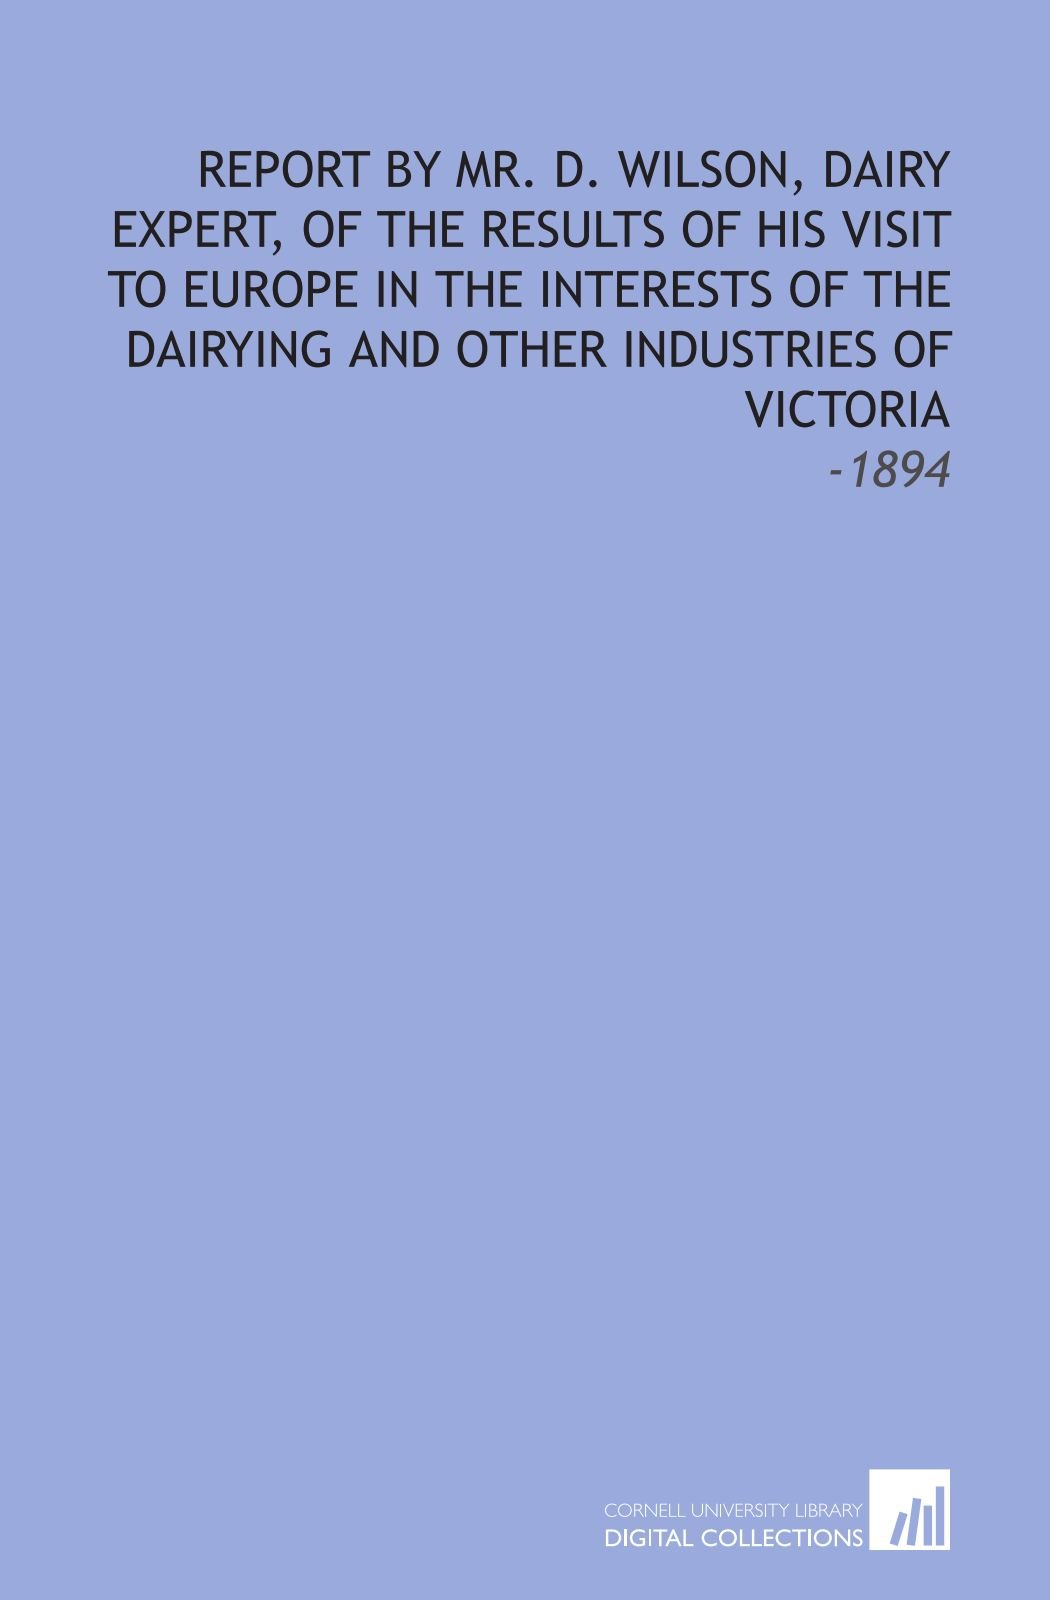 Report by Mr. D. Wilson, Dairy Expert, of the Results of His Visit to Europe in the Interests of the Dairying and Other Industries of Victoria: -1894 ebook